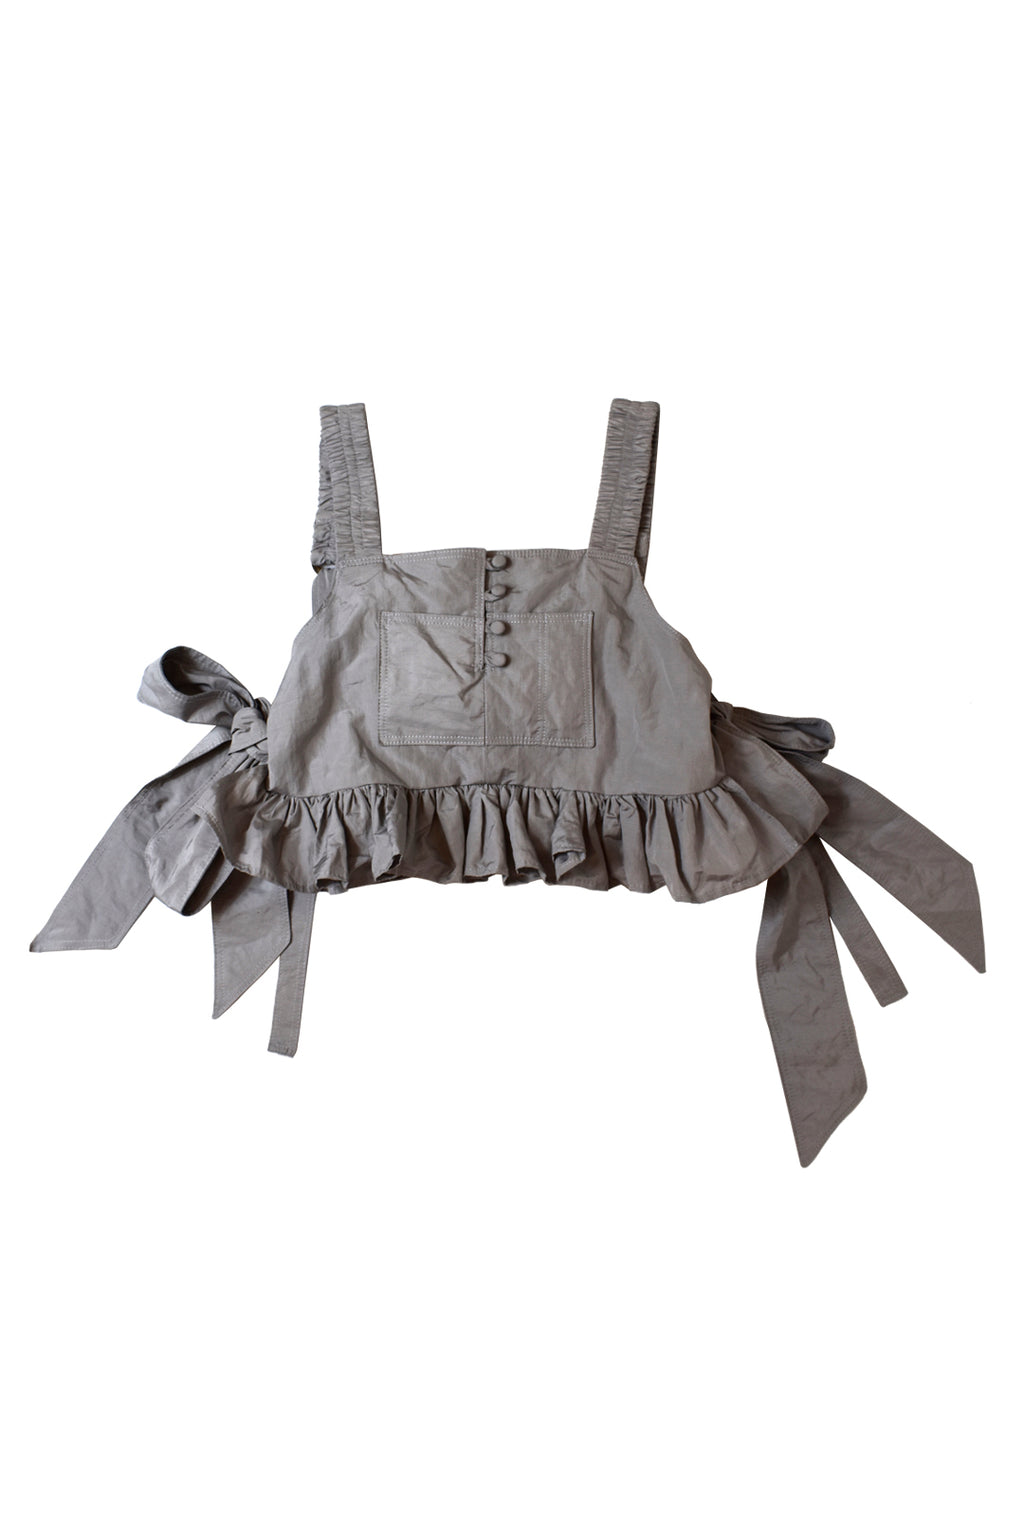 NYLON RUFFLE TOP – 1 OF 1